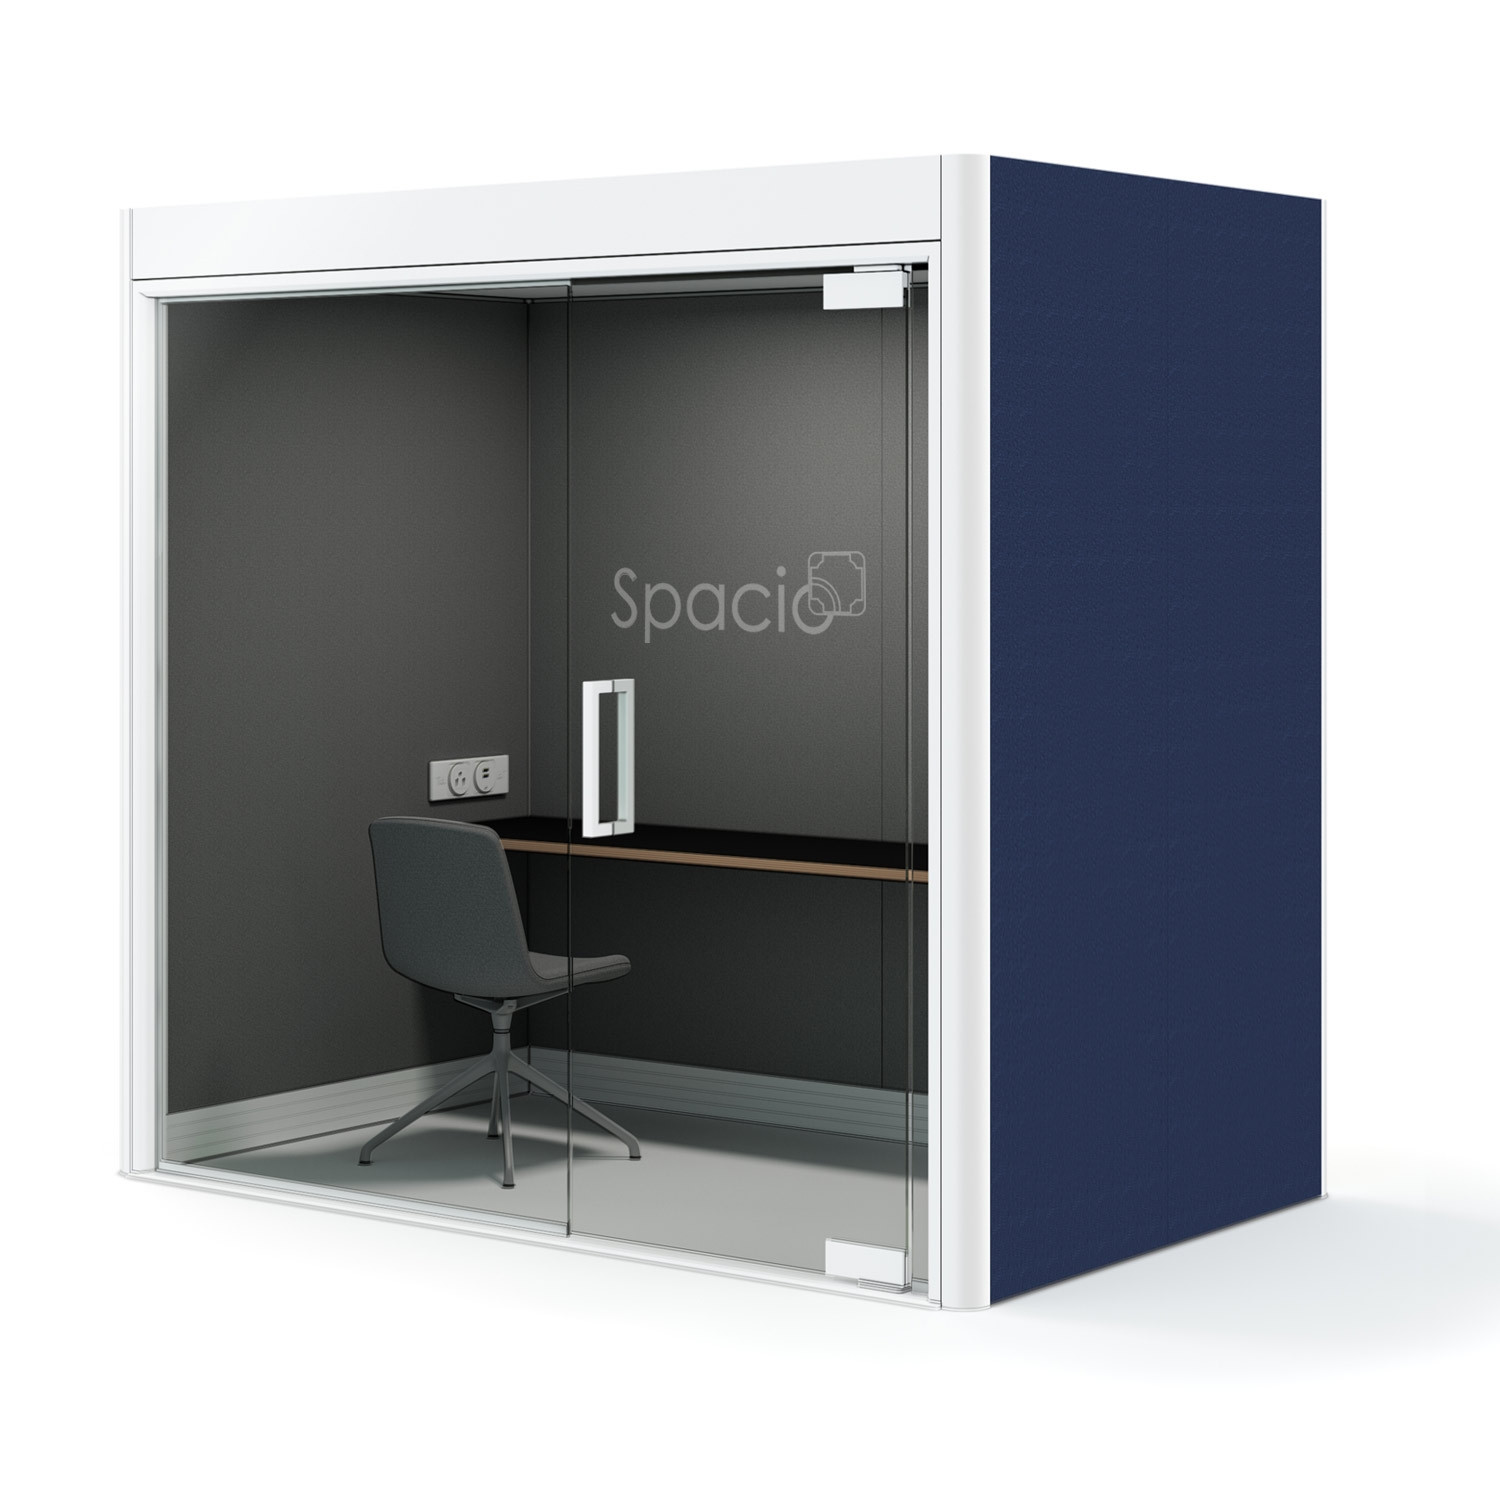 Spacio Privacy Work Pod